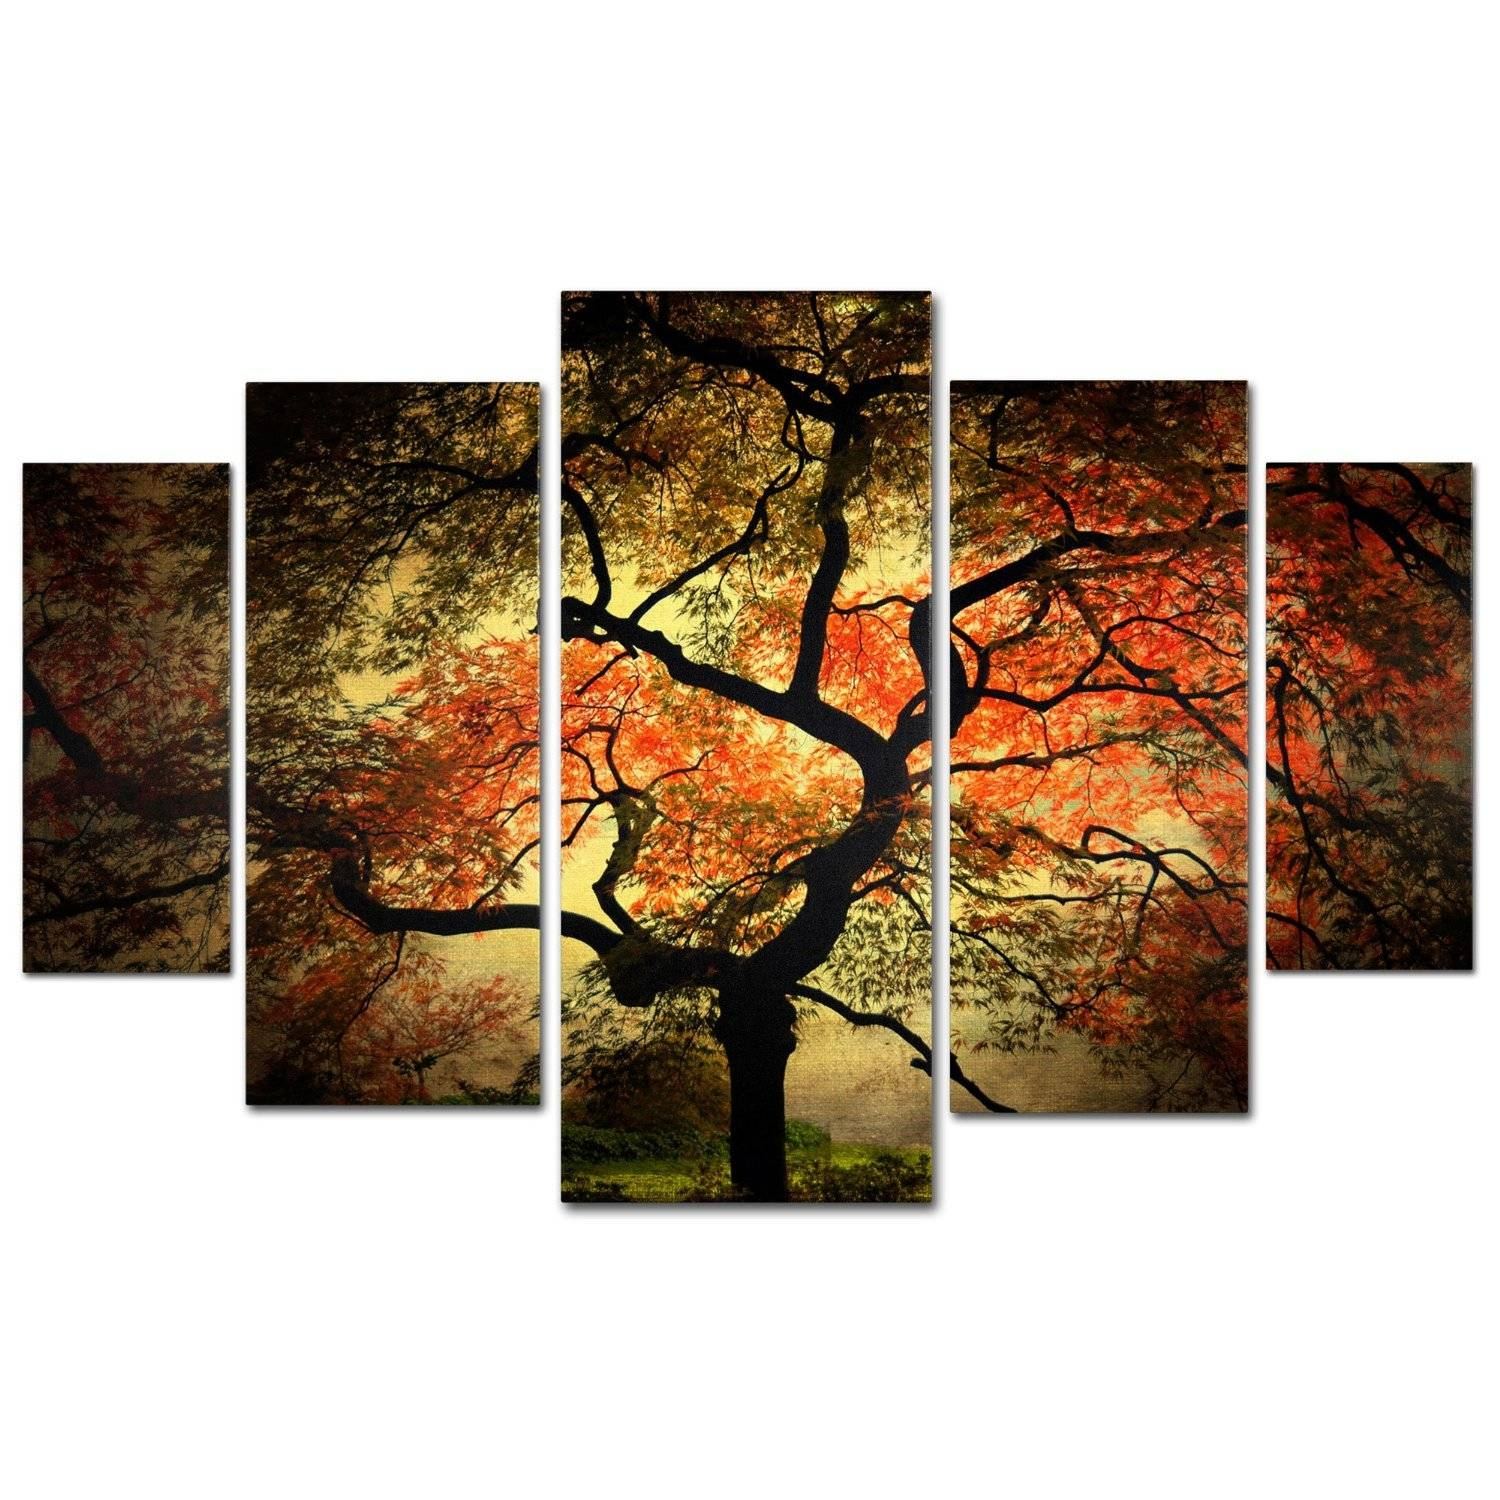 Winsome Multi Piece Wall Art Shutterfly Home Decor Piece Canvas Pertaining To 2017 Multiple Piece Wall Art (View 3 of 20)